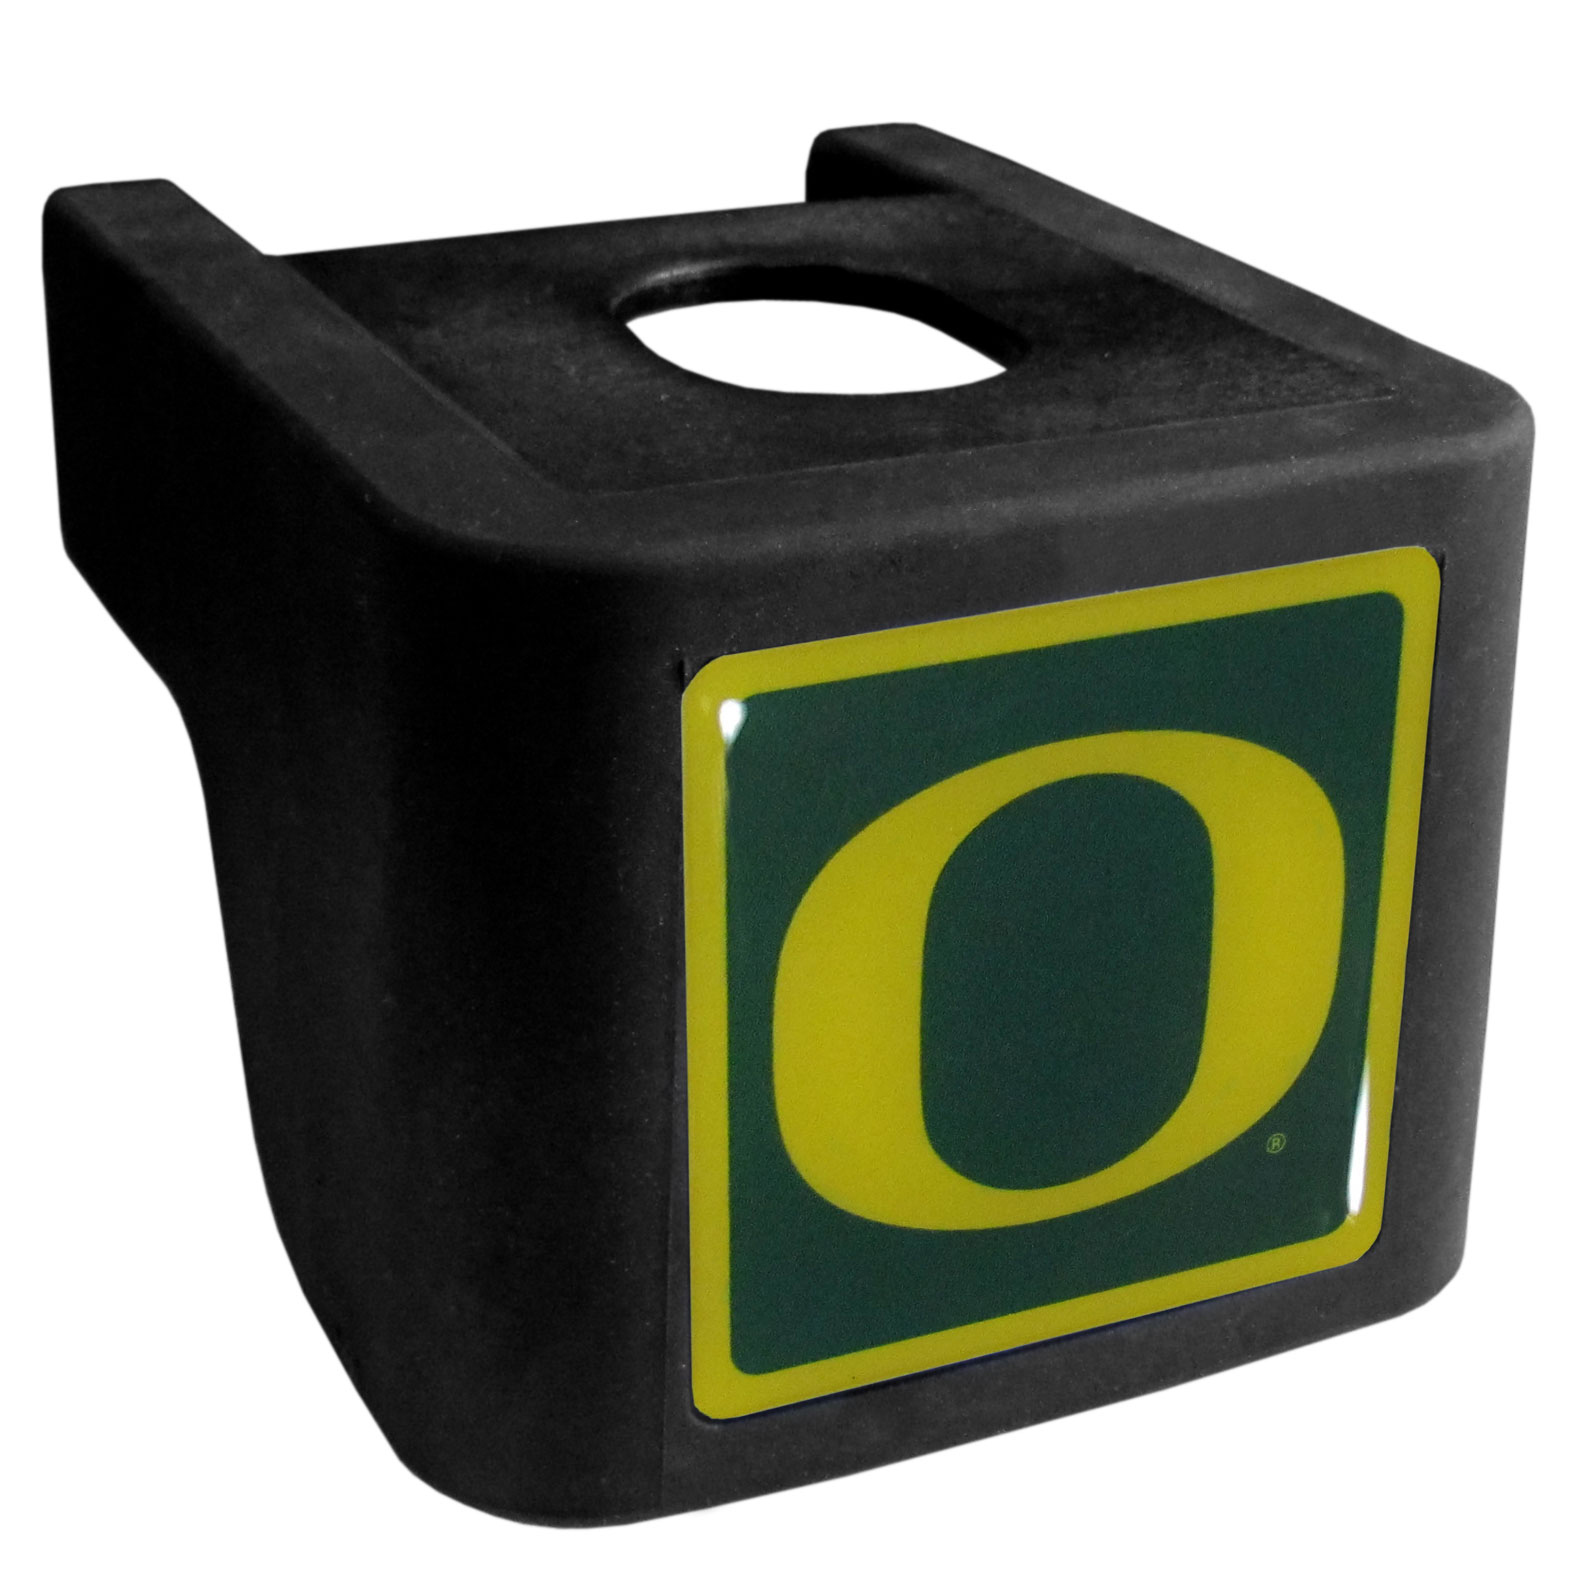 Oregon Ducks Shin Shield Hitch Cover - This unique hitch cover features a large Oregon Ducks logo. If you have ever hooked up a trailer or boat your have probably smashed your shins on the ball hitch a few times. This revolutionary shin shield hitch cover provides your much abused shins with the protection they deserve! The tough rubber hitch is rated to work with Class V hitch receivers hauling up to 17,000 gross trailer weight and 1,700 tongue weight allowing you to leave it on while hauling.